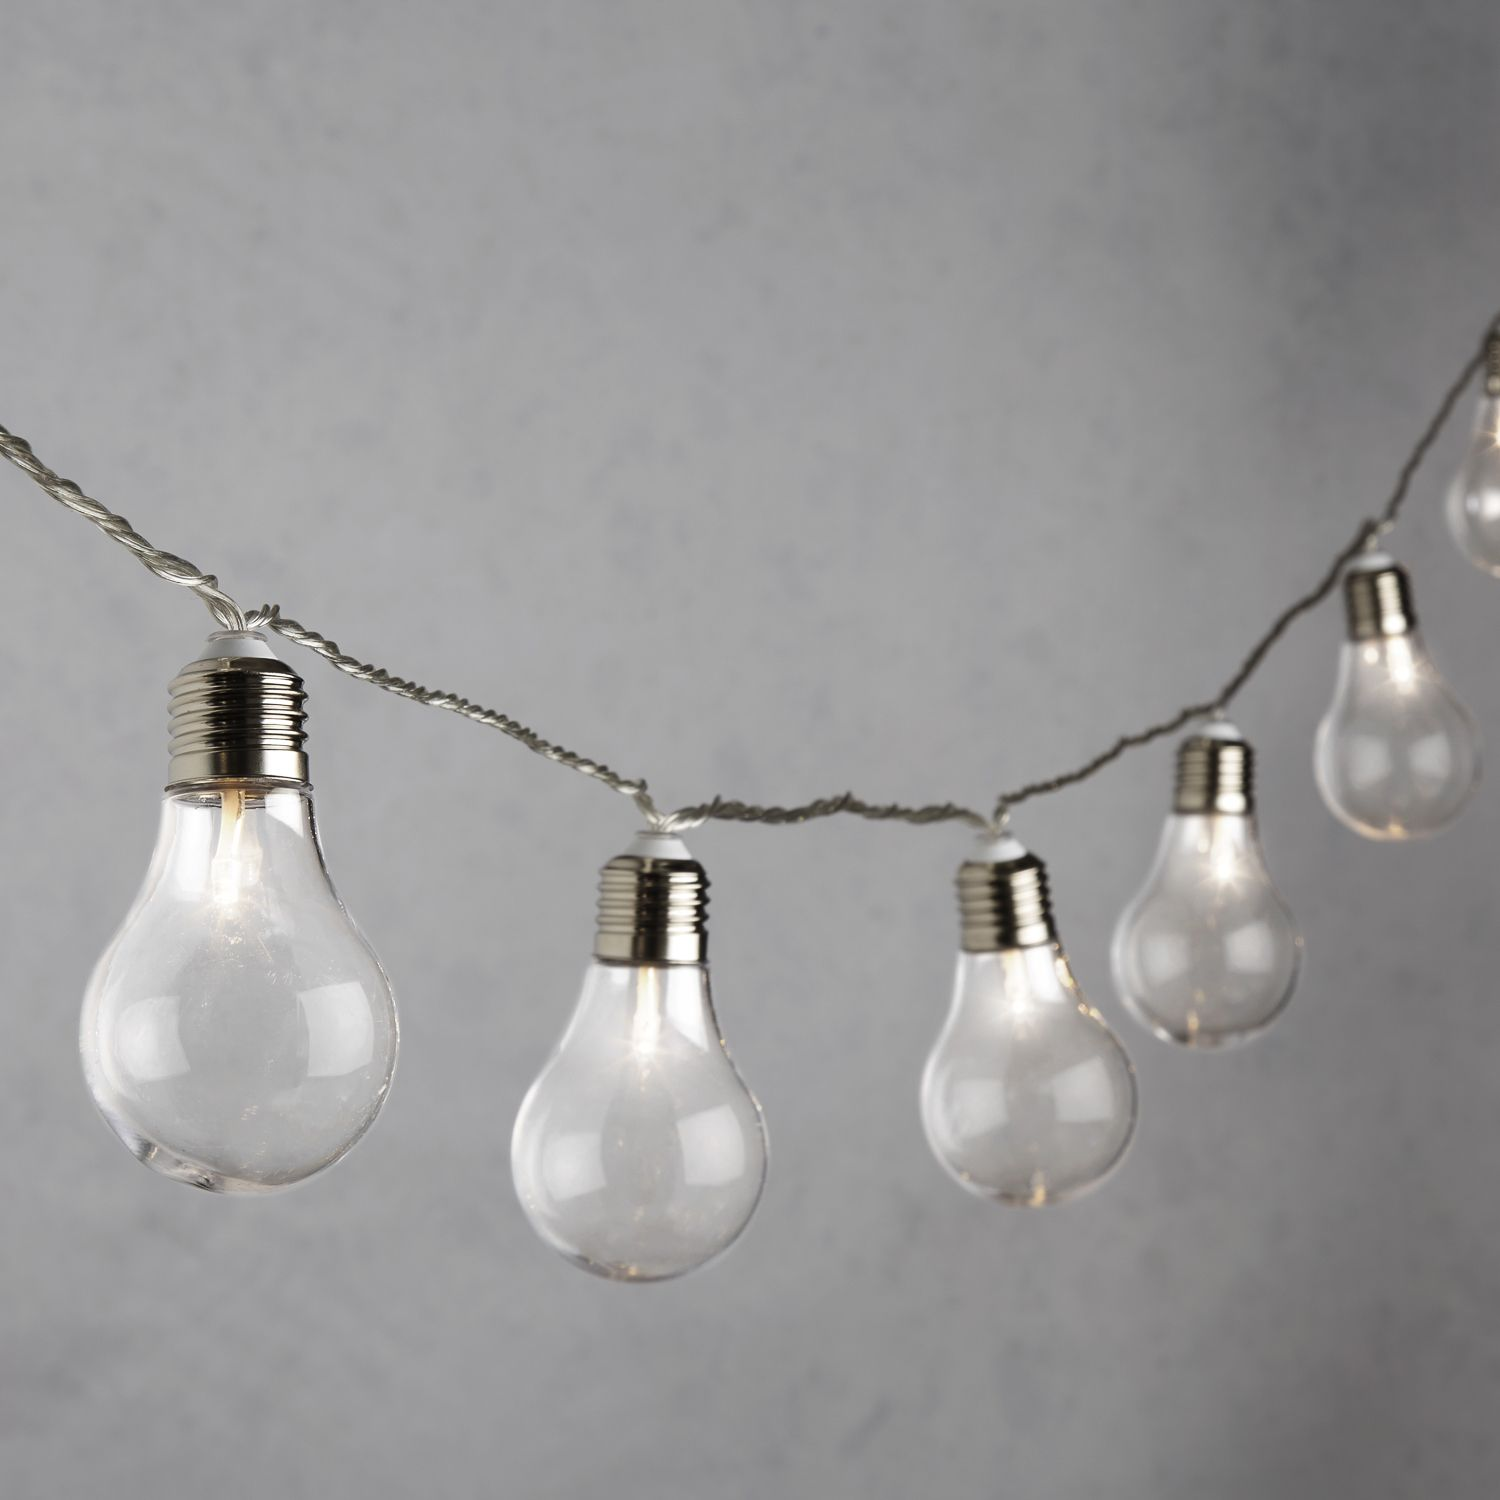 Pin On String Lights Year Round